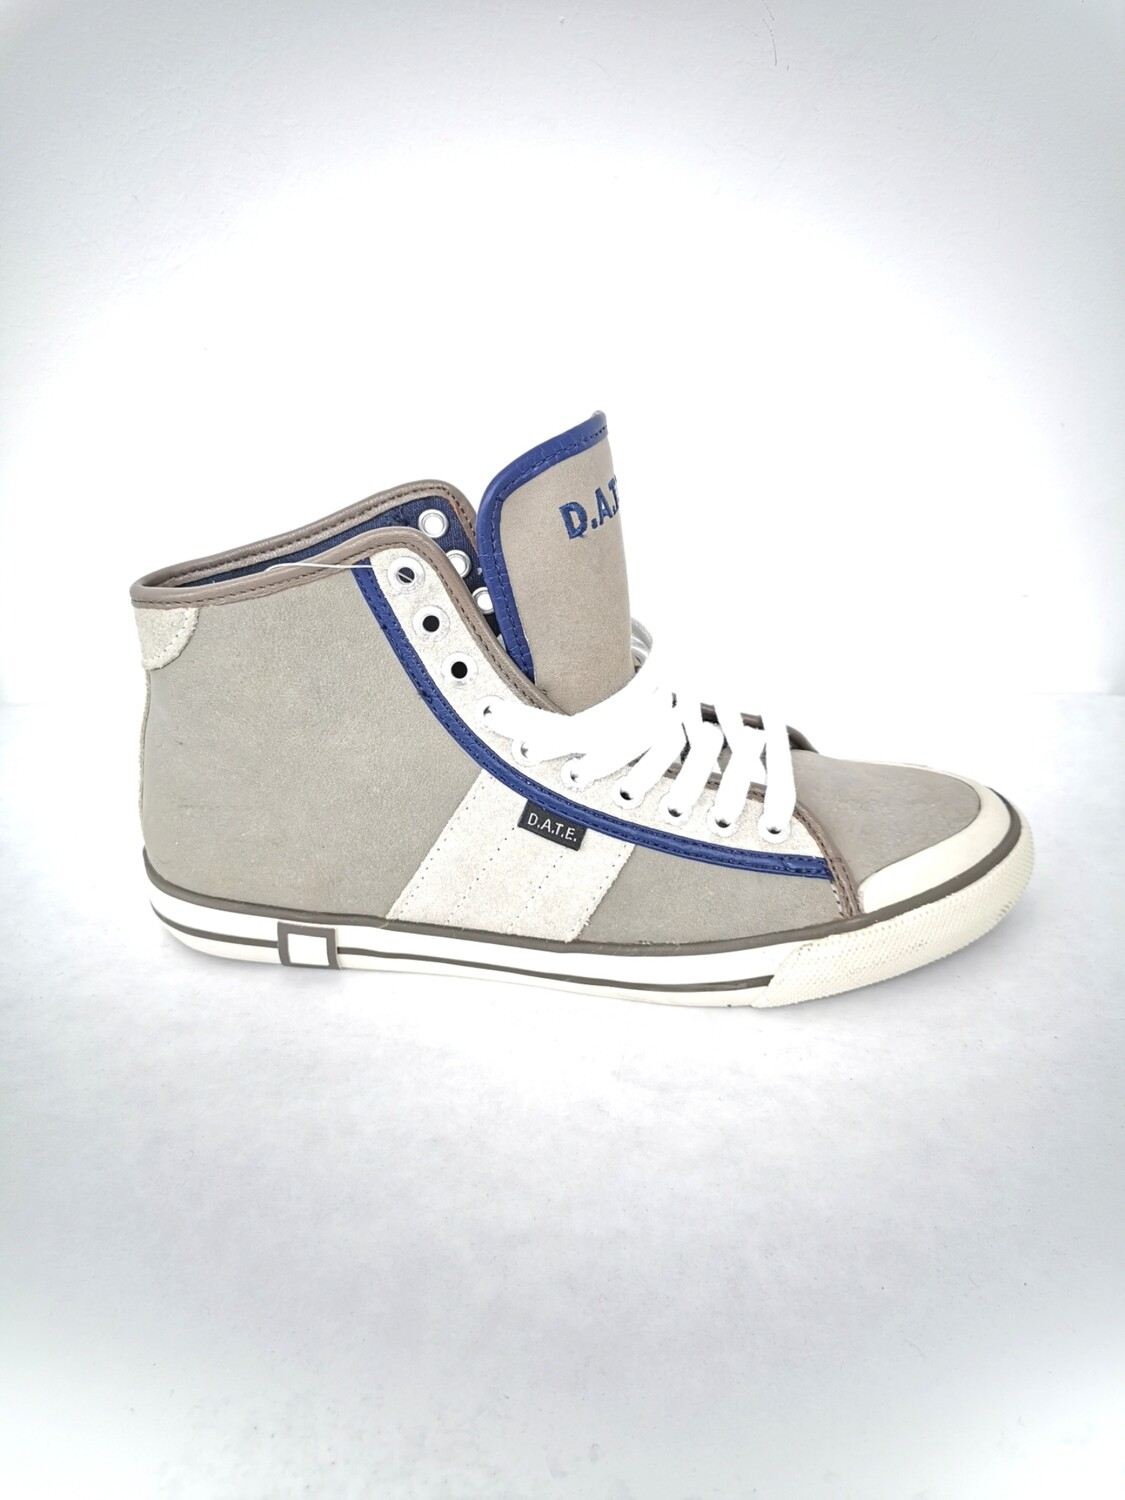 D.a.t.e. high sneakers